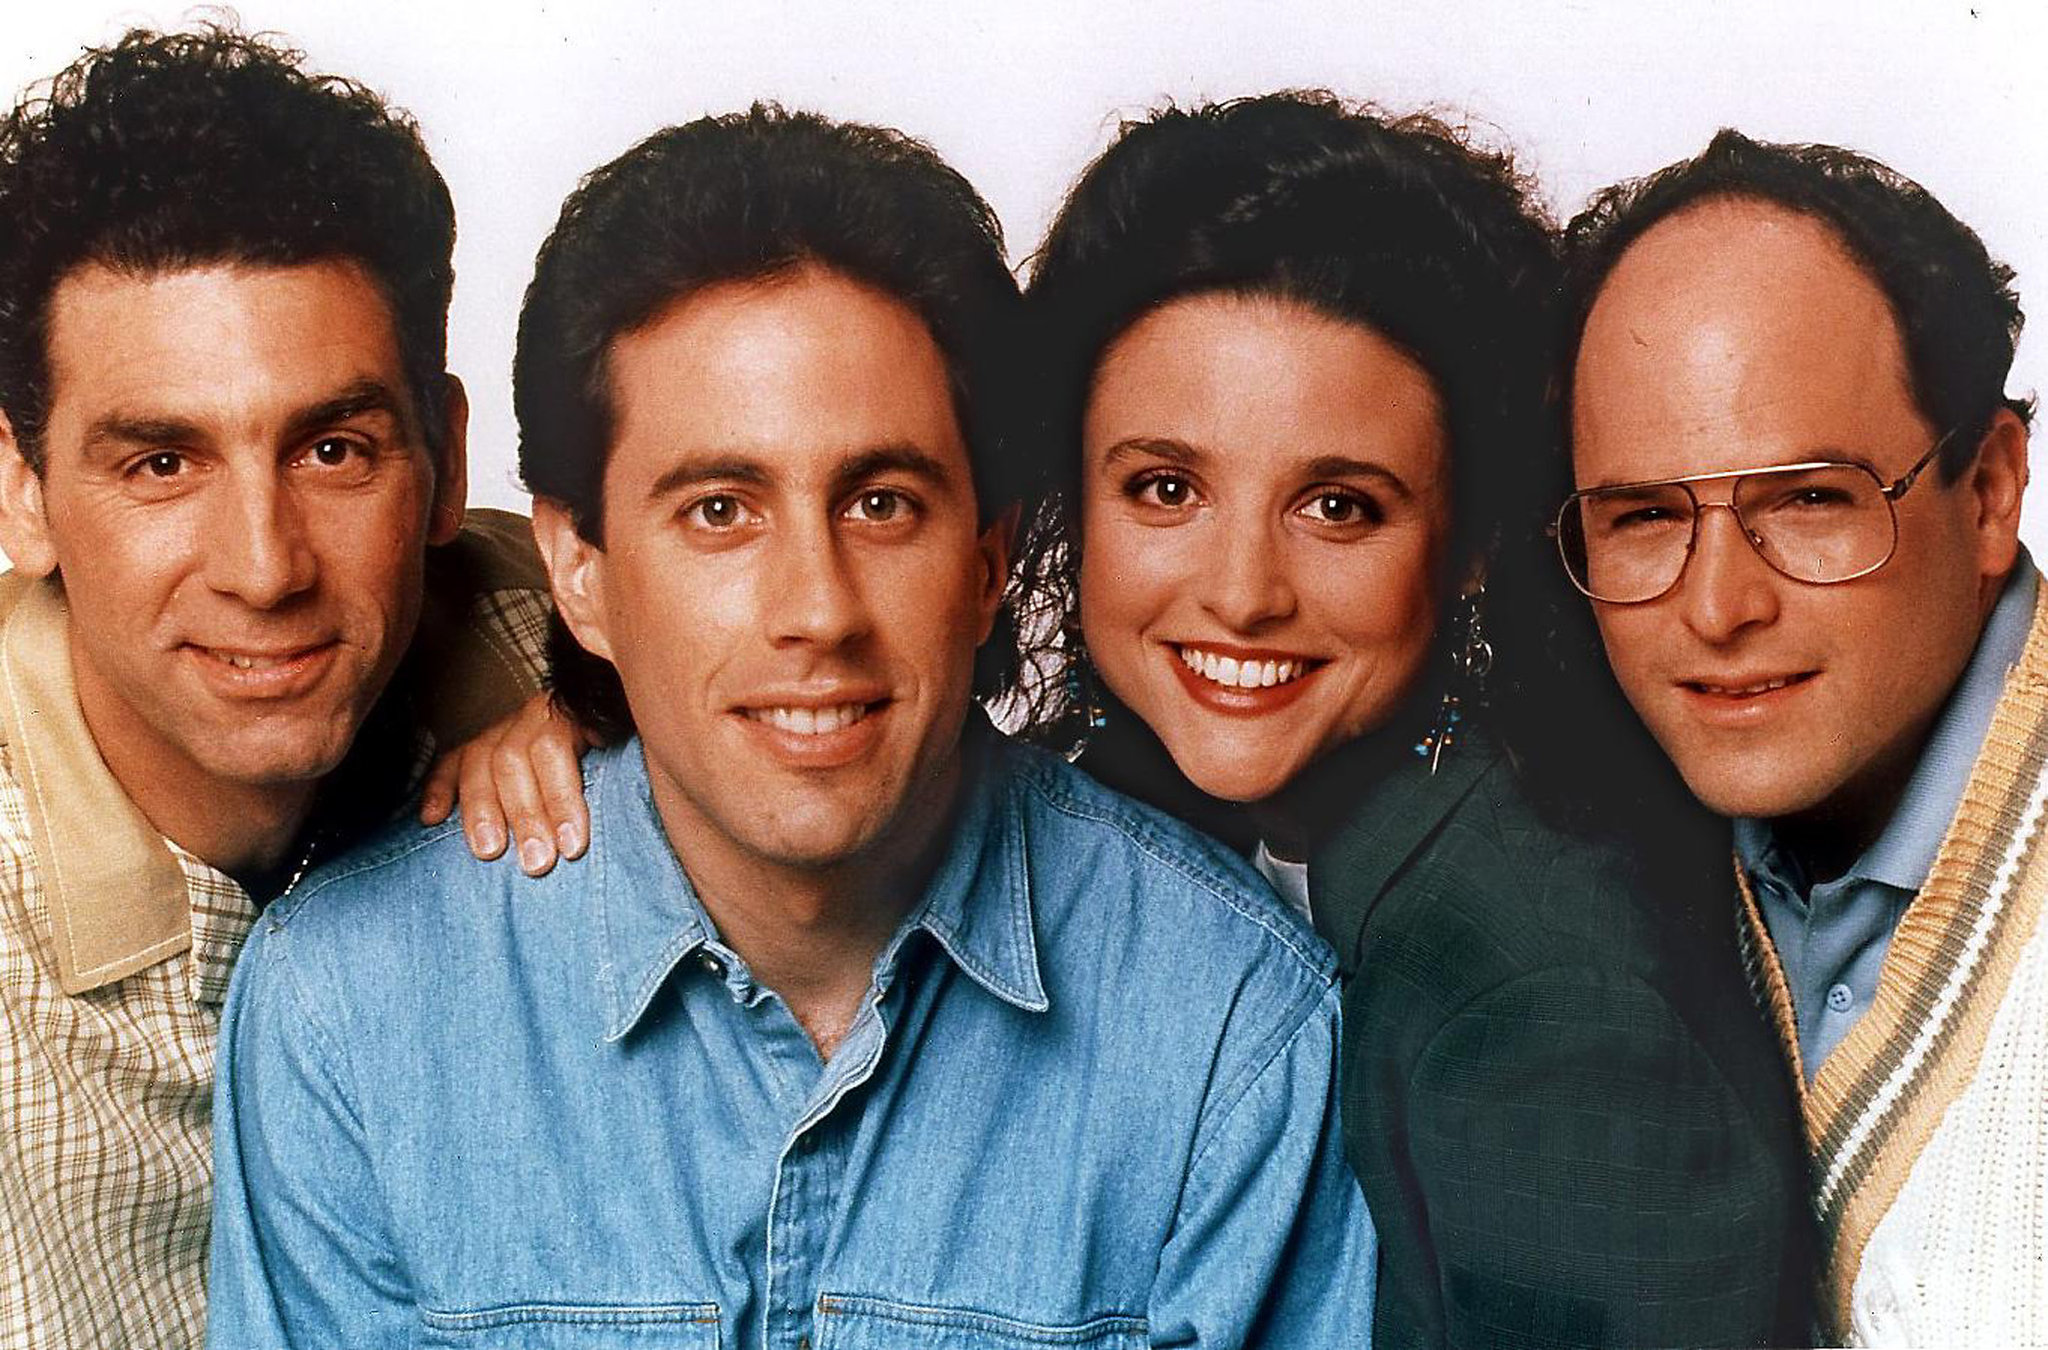 It was on this Day in 1990 that Seinfeld Debuted on NBC